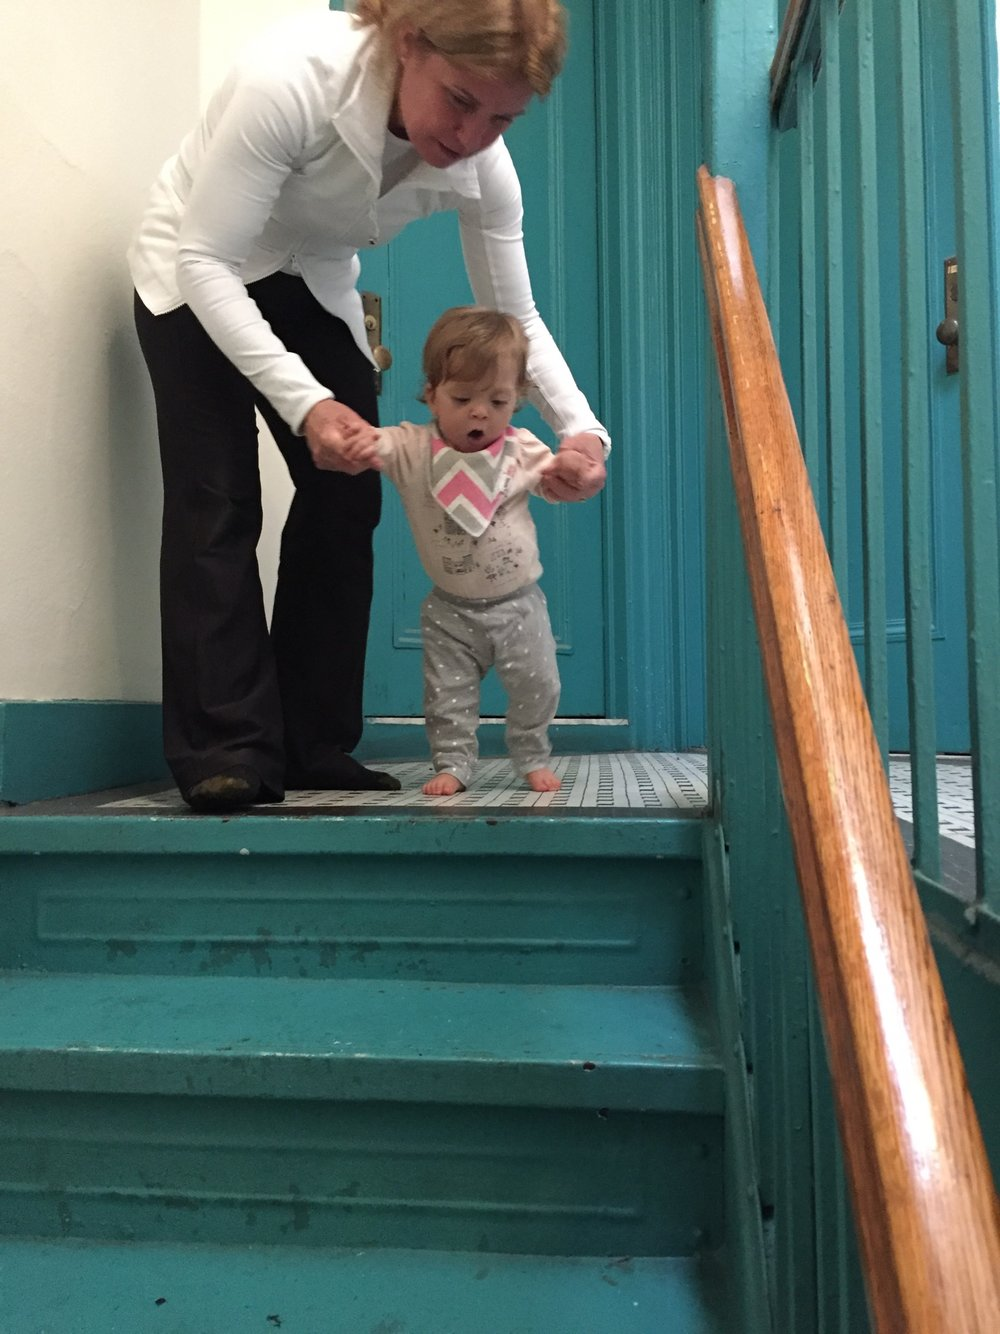 More practice on the stairs.